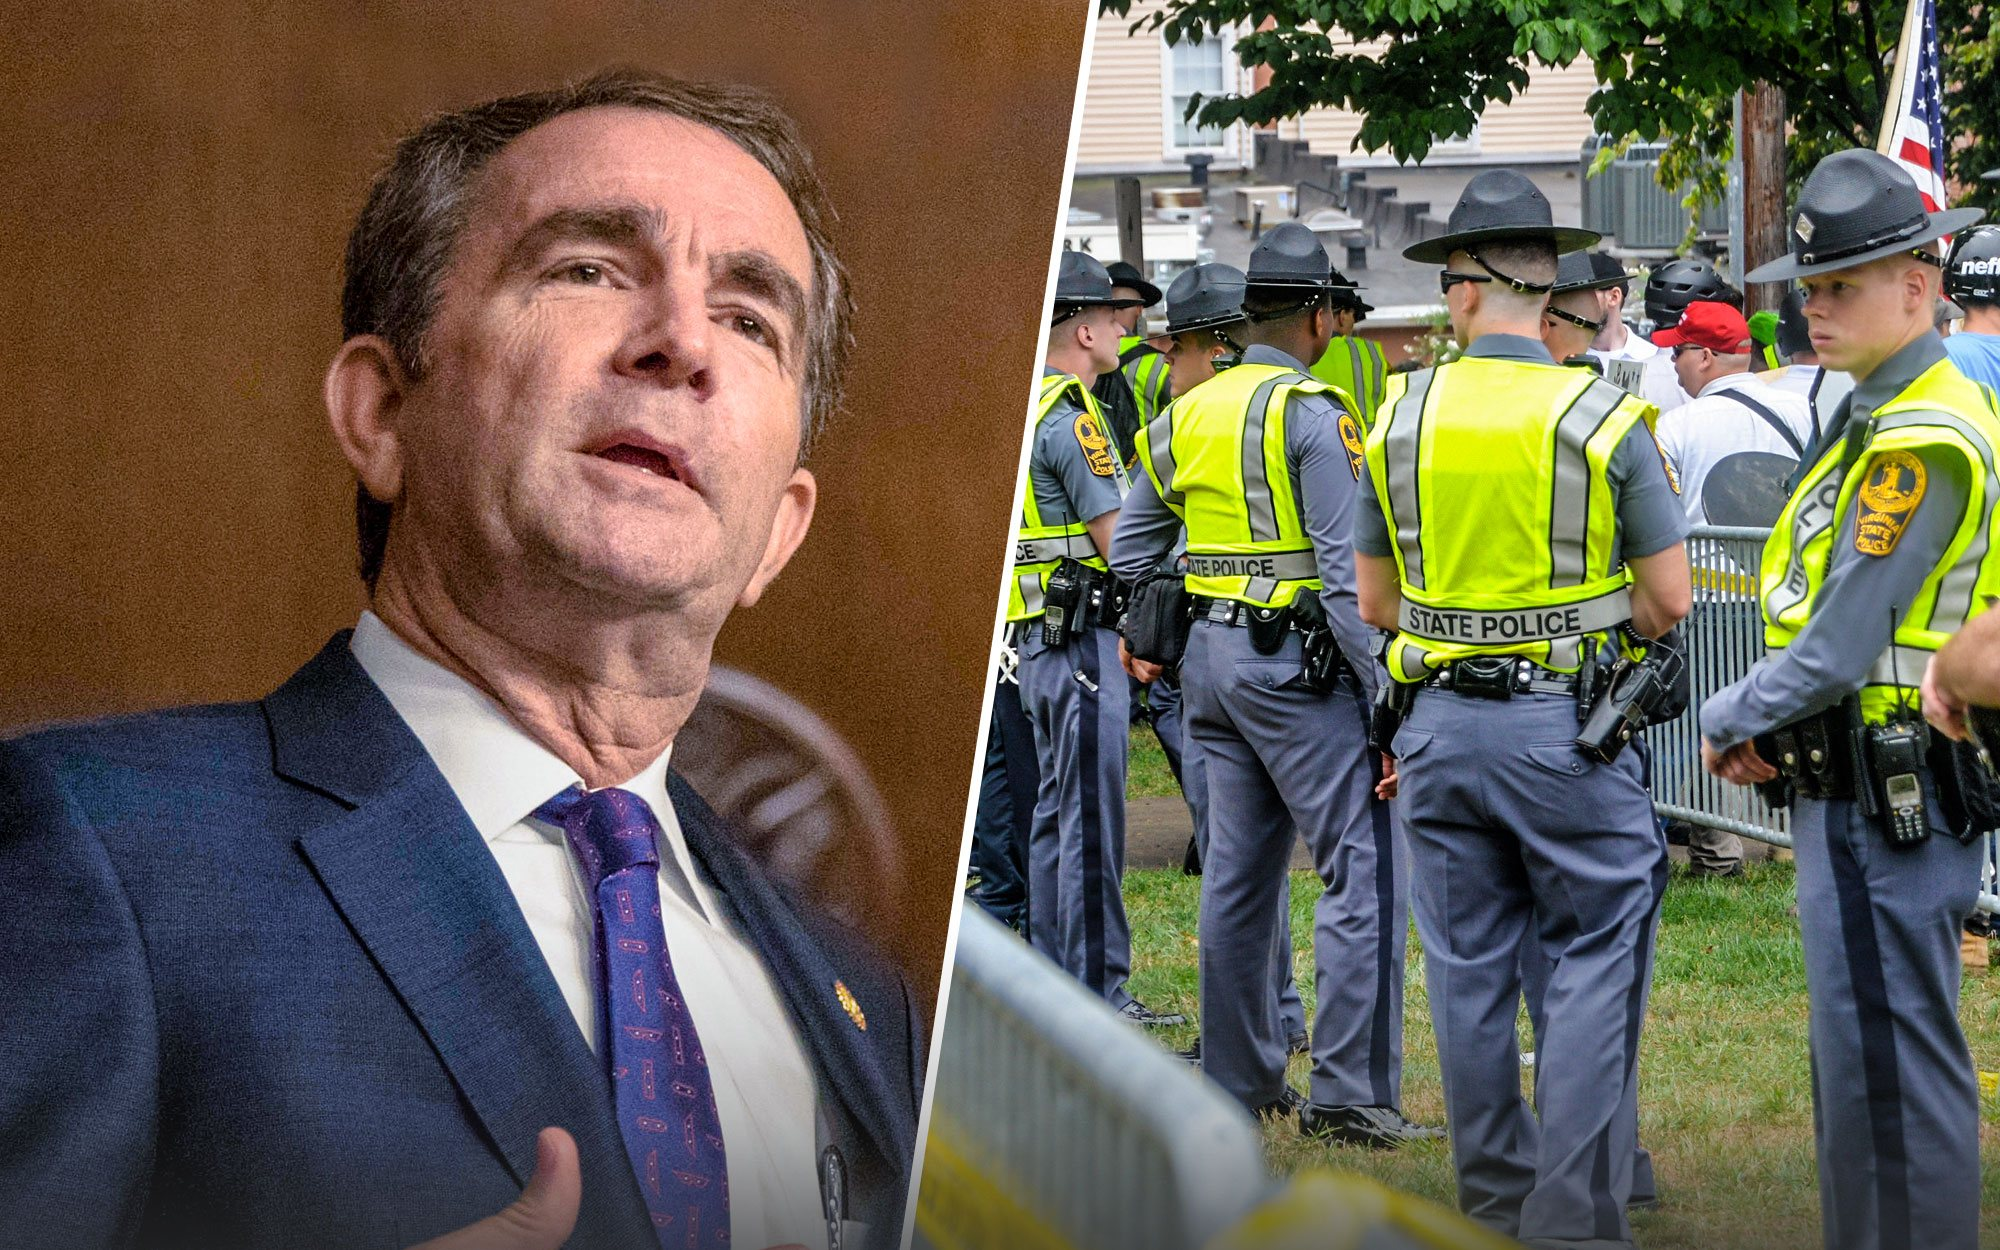 Virginia Braces for Gun-Rights Rally as Worries Over Violence, Hate Groups and Militias Grow